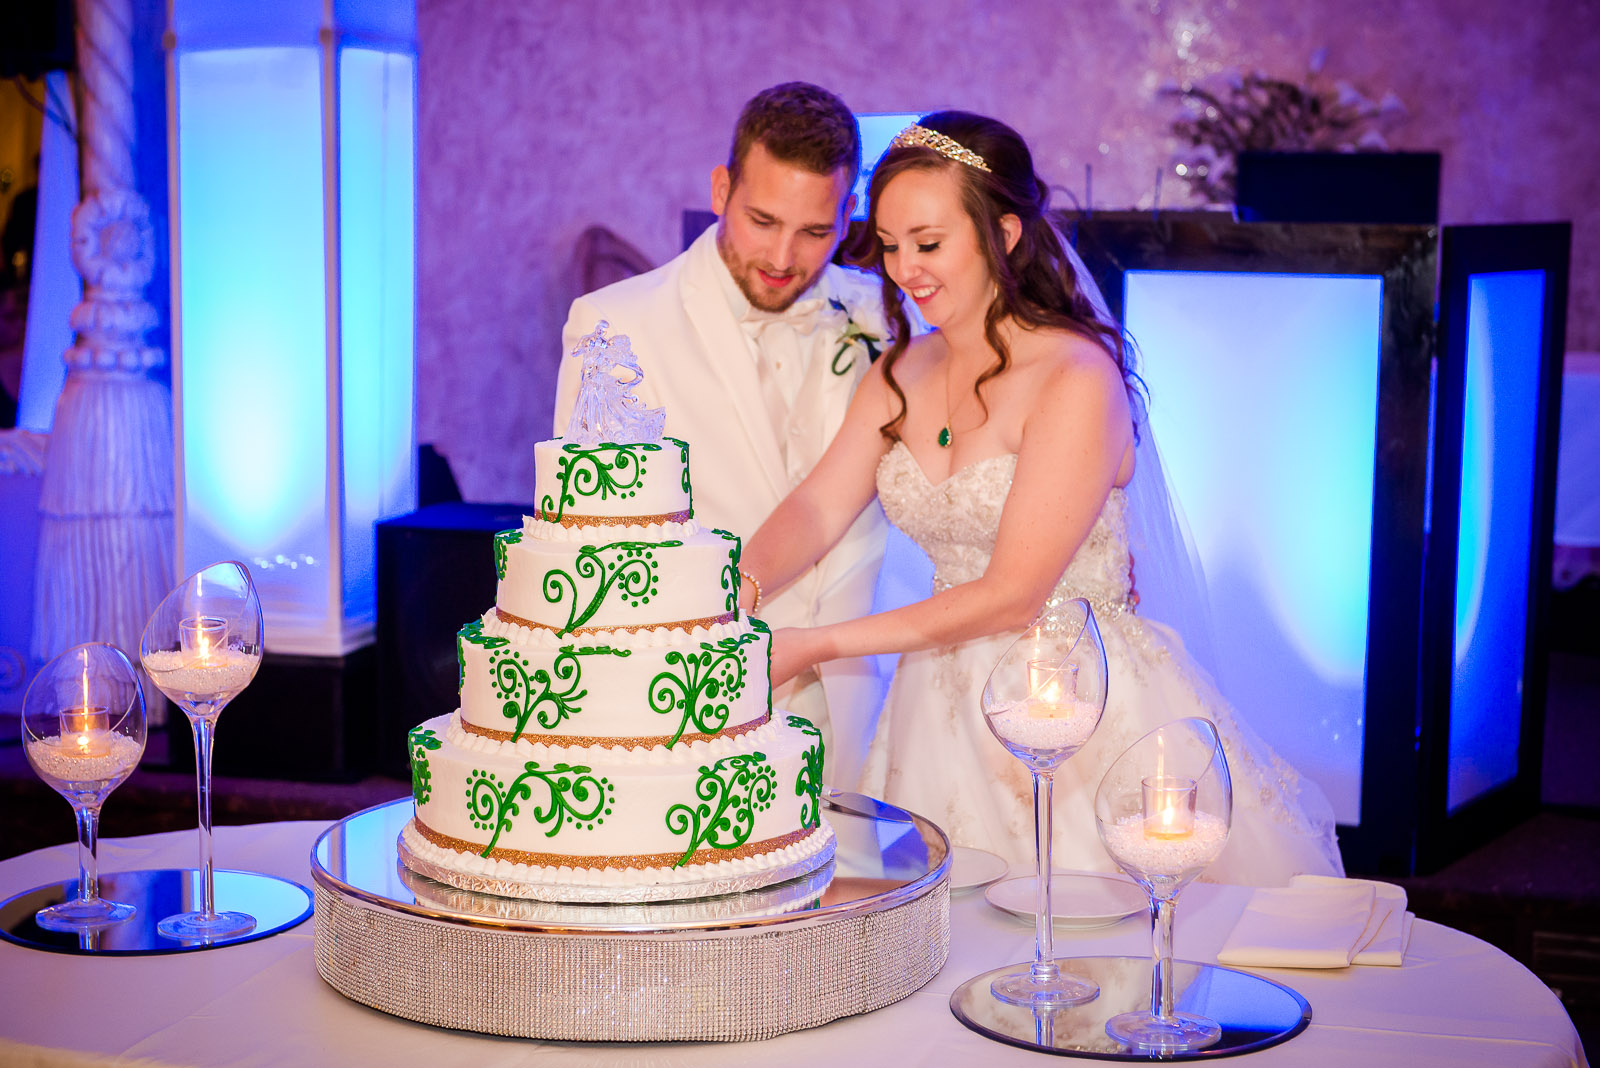 Eric_and_Christy_Photography_Blog_Wedding_Eva_Andrew-58